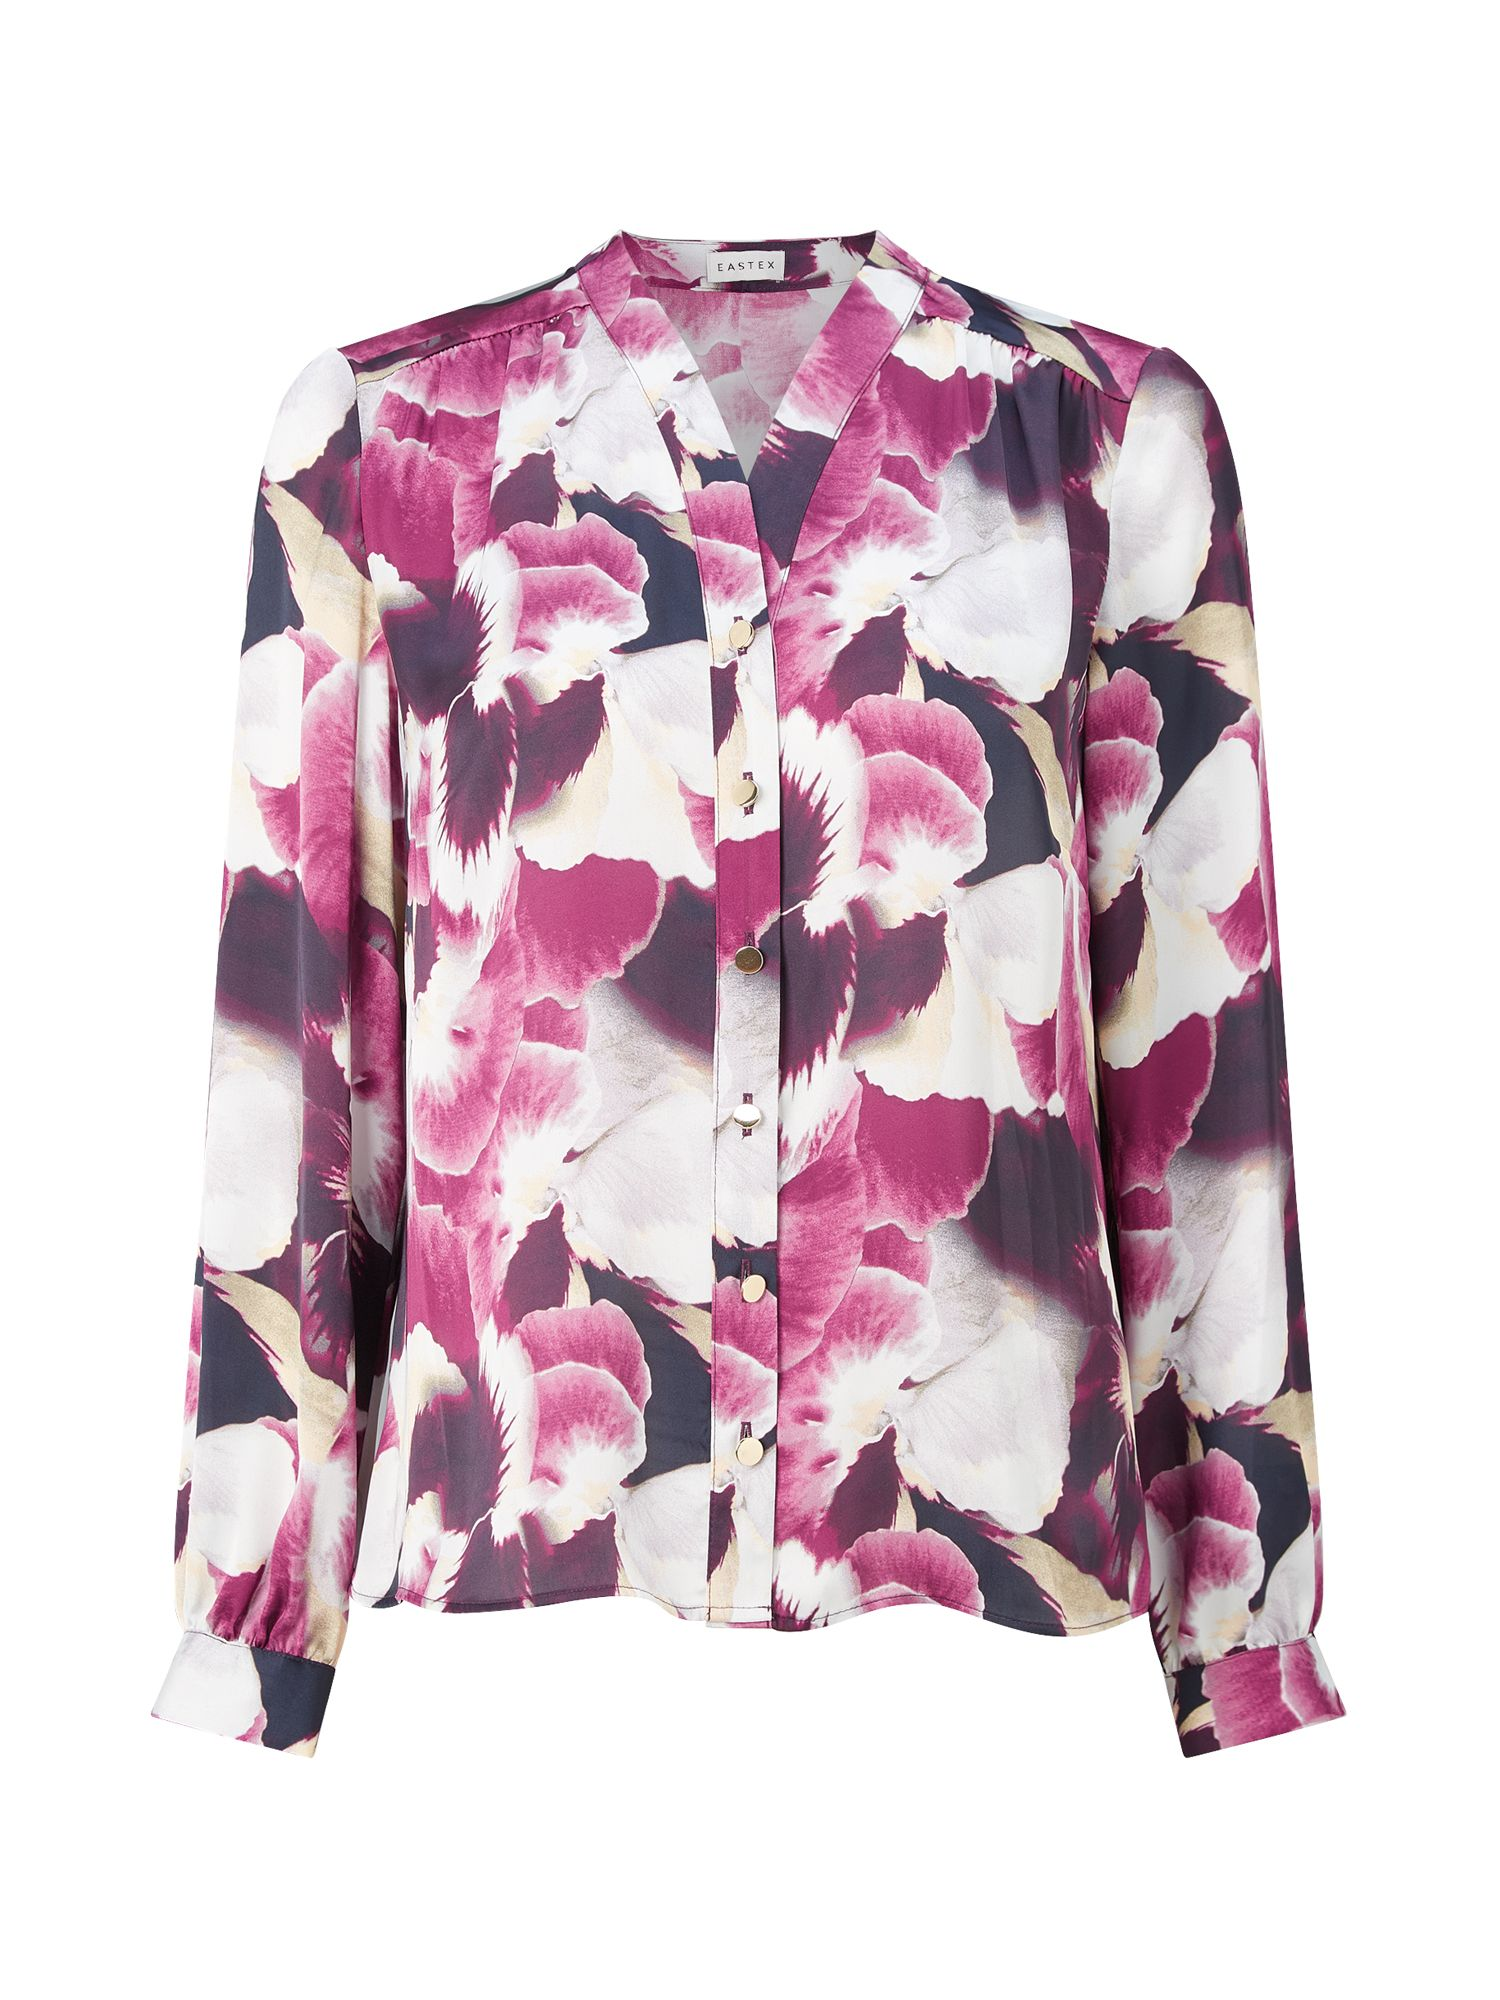 Eastex Harvest Bloom Print Blouse, Multi-Coloured